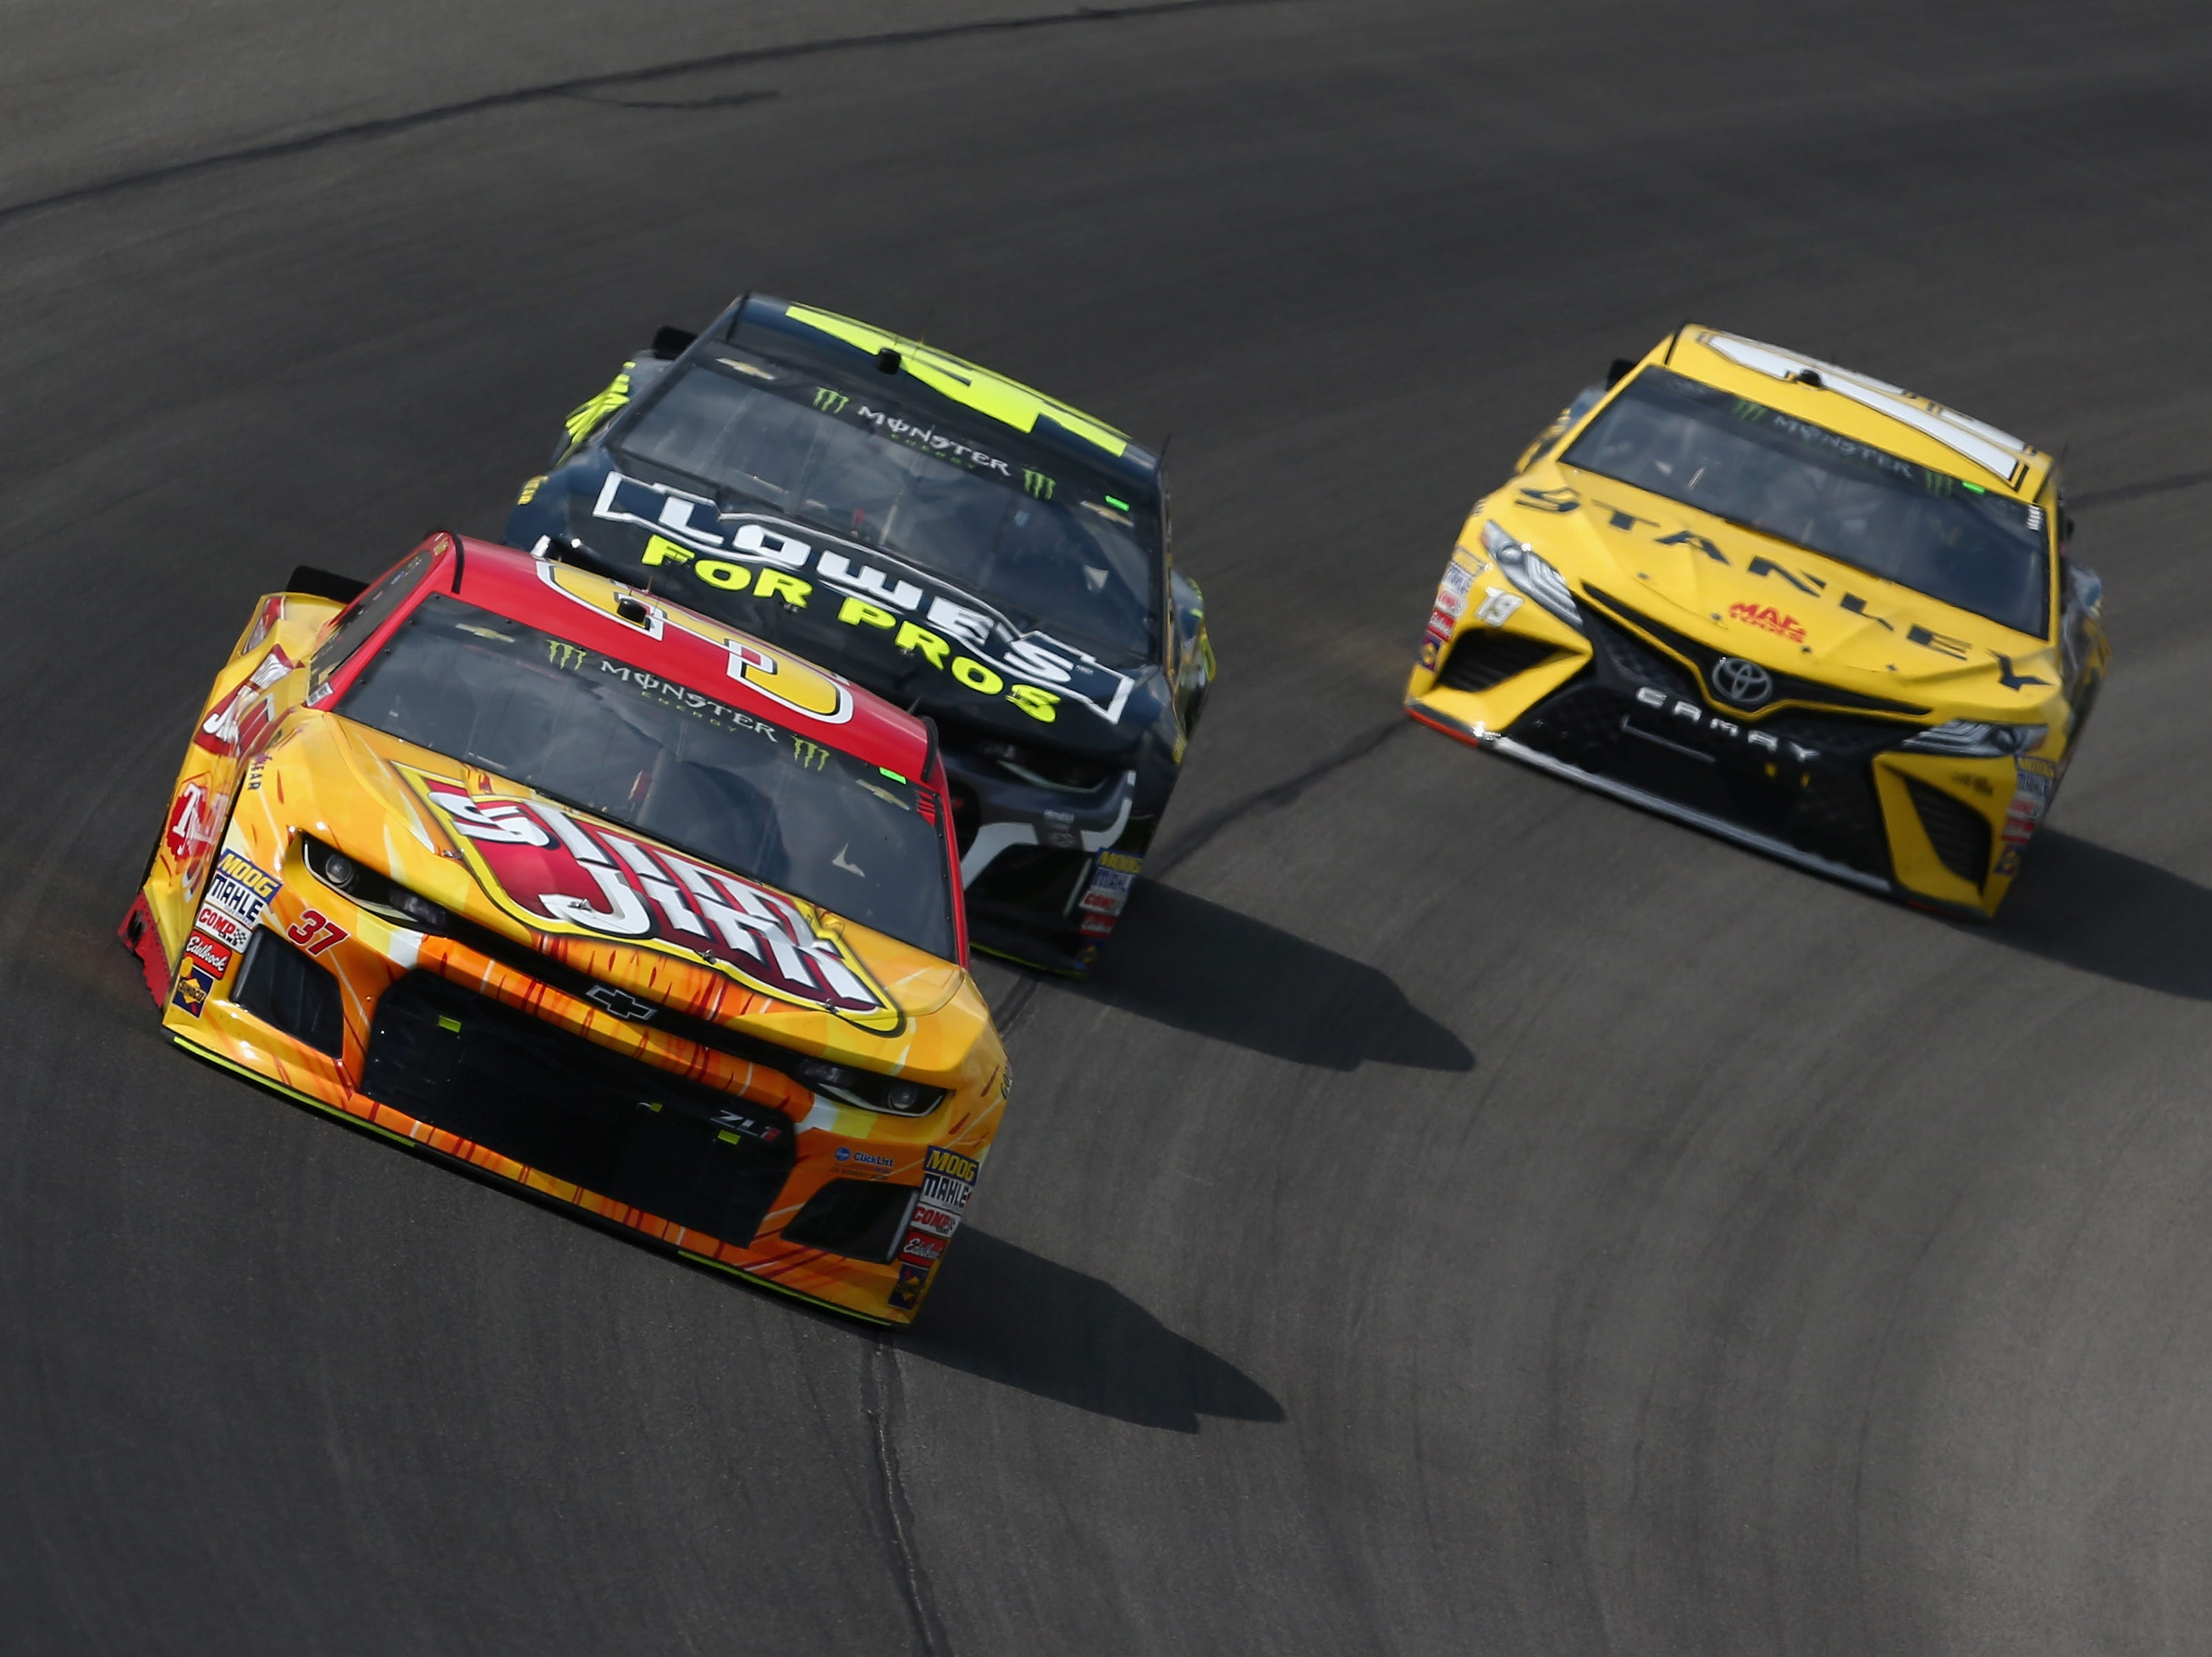 Chris Buescher, driver of the No. 37 Slim Jim Chevrolet, leads Jimmie Johnson, driver of the No. 48 Lowe's for Pros Chevrolet and Daniel Suarez, driver of the No. 19 Stanley Toyota, during the Monster Energy NASCAR Cup Series Consmers Energy 400 at Michigan International Speedway on August 12, 2018 in Brooklyn, Michigan.